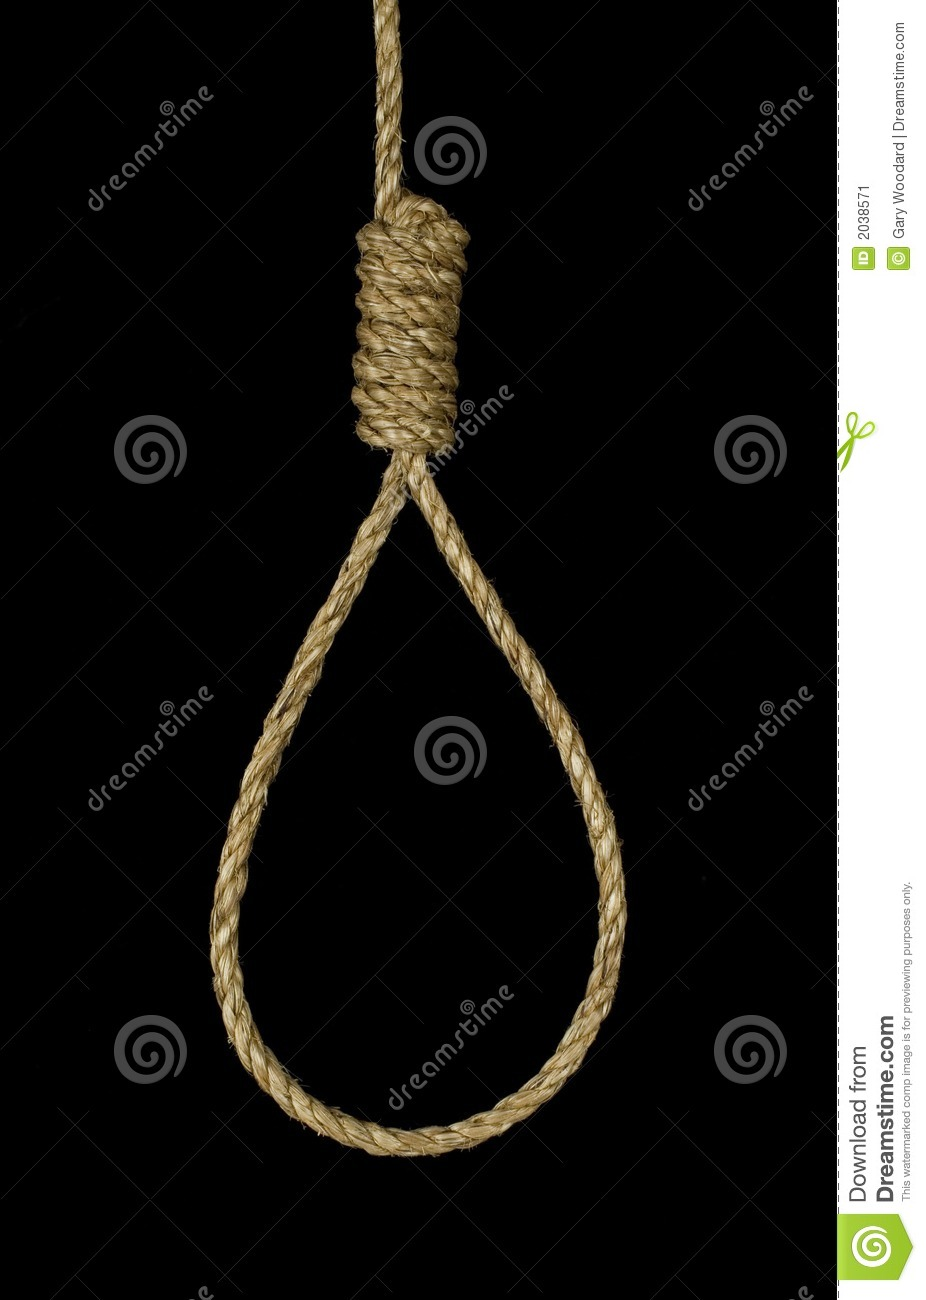 Hanging Noose Stock Image Image Of Knot Rope Tied 2038571